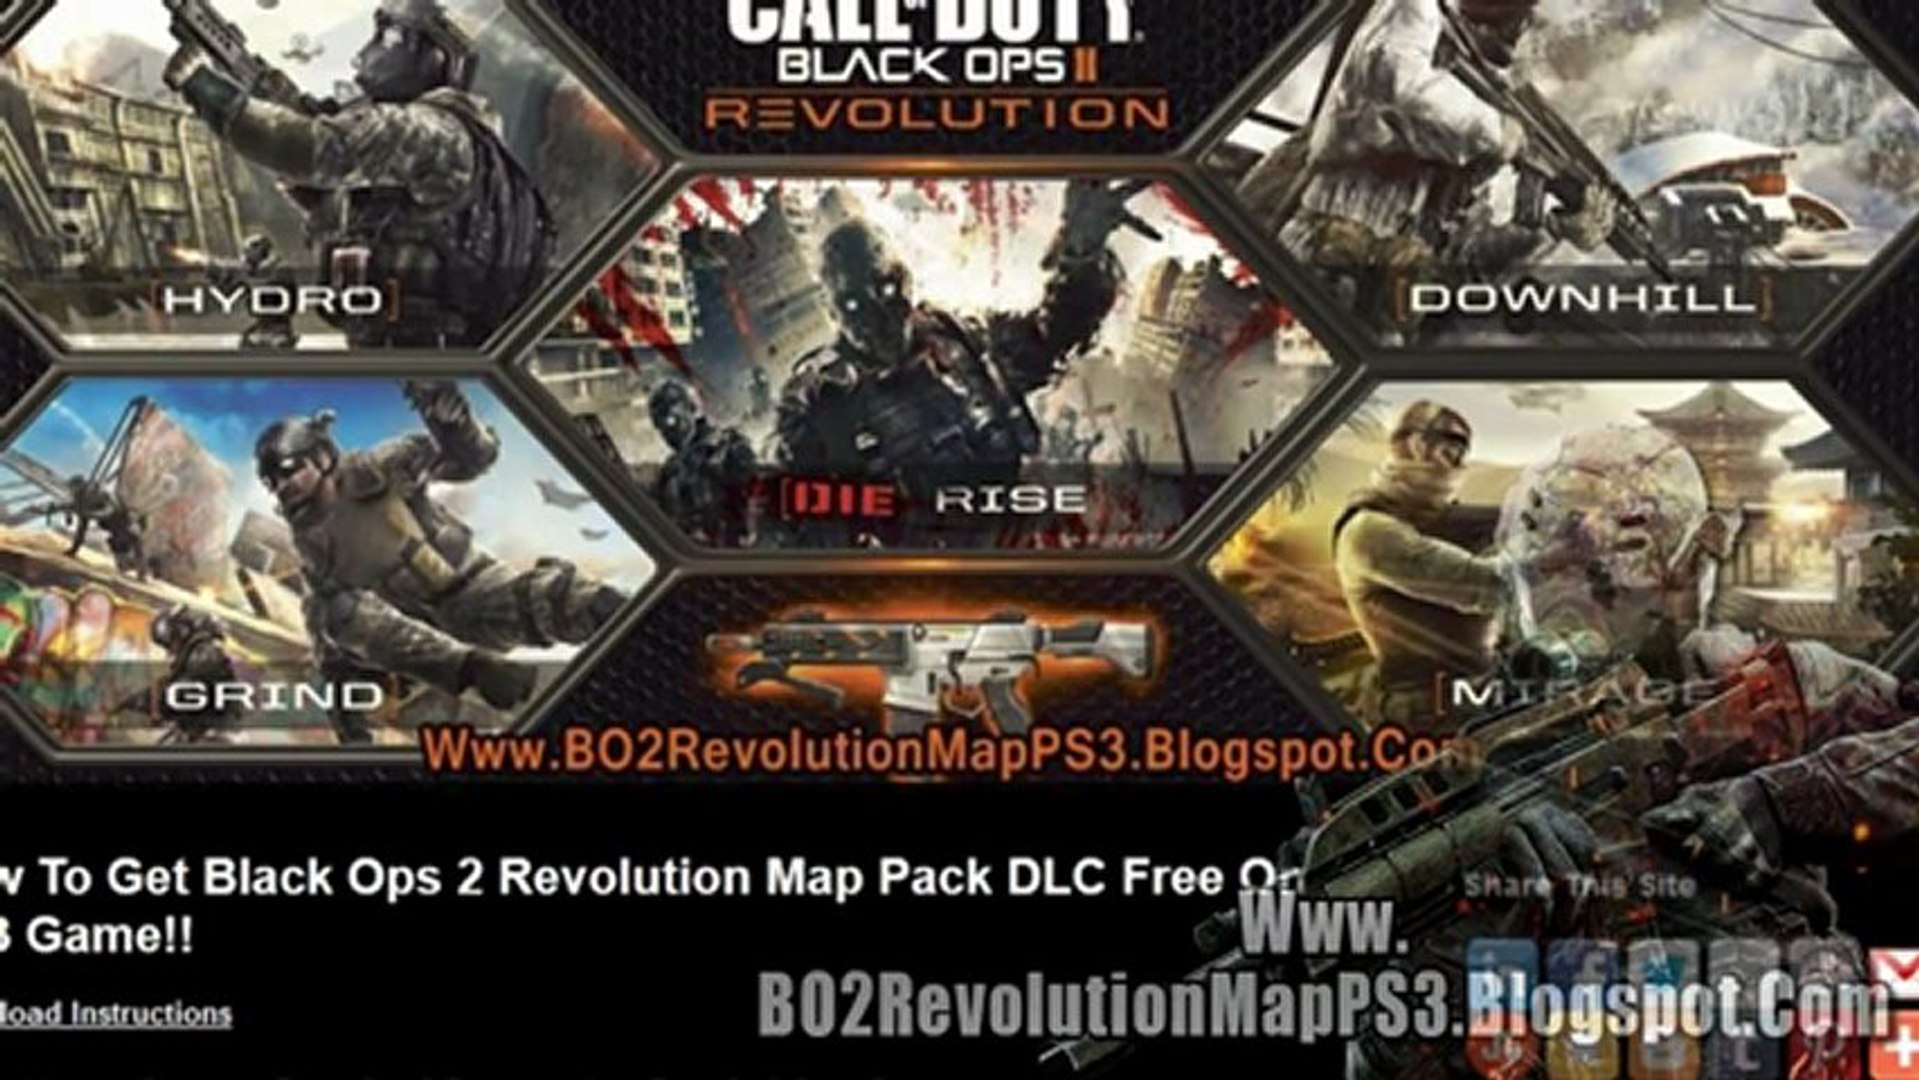 Black Ops 2 Revolution Map Pack DLC Free on PS3 on call of duty black ops 2 map packs, black ops 1 zombies, all zombie map packs, black ops next map pack, black ops 3 2015, call of duty zombies map packs, bo2 zombies map packs, black ops 1 maps, black ops 2nd map pack, black ops resurrection map pack, black ops nazi zombies maps, black ops zombies maps list, cod black ops 2 map packs, call of duty bo2 map packs, black ops two zombies maps, black ops advanced warfare, black ops ghost zombies, black ops rezurrection map pack, black ops 3 zombies, black ops map packs list,